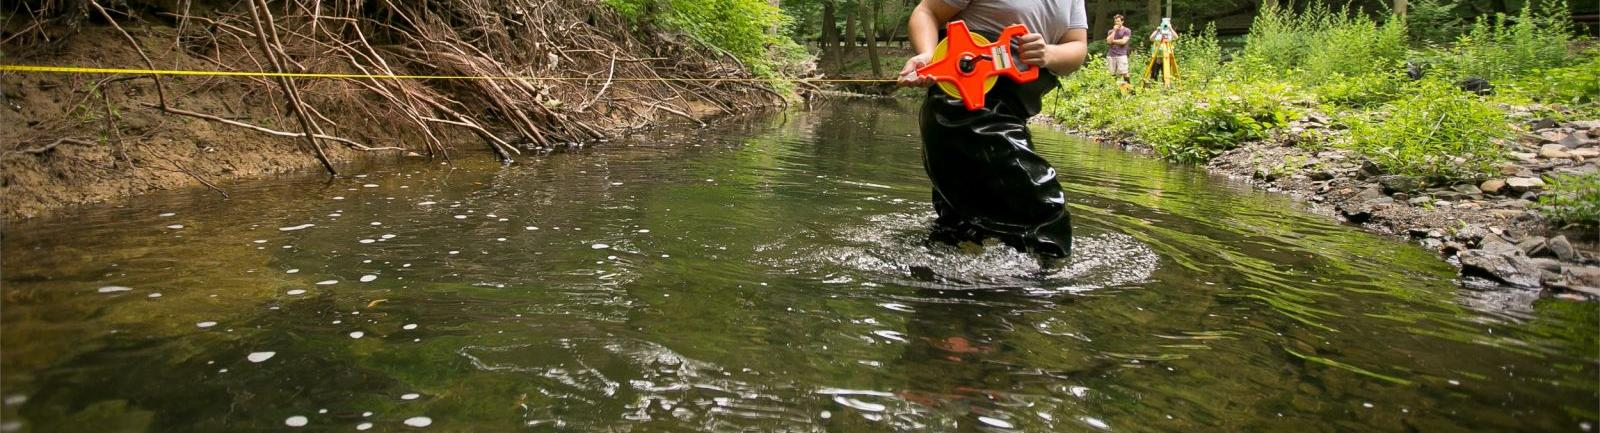 Temple environmental studies student standing in a creek in the woods performing an experiment.